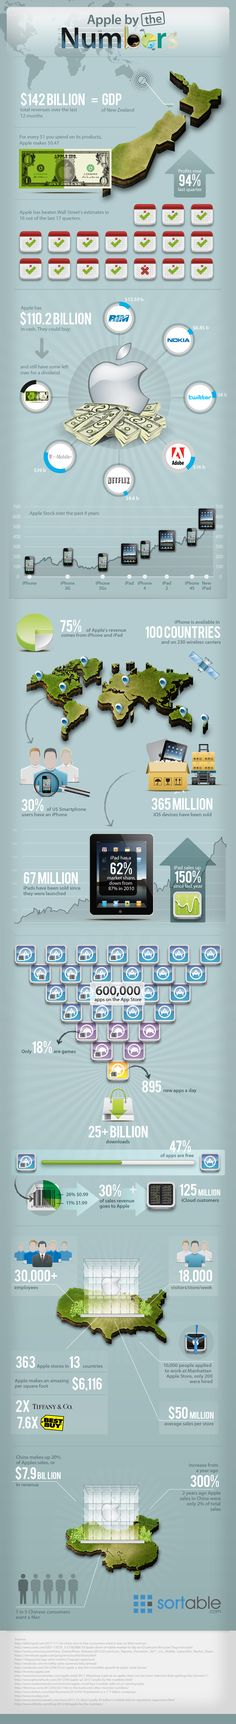 #Apple by the Numbers #infographic